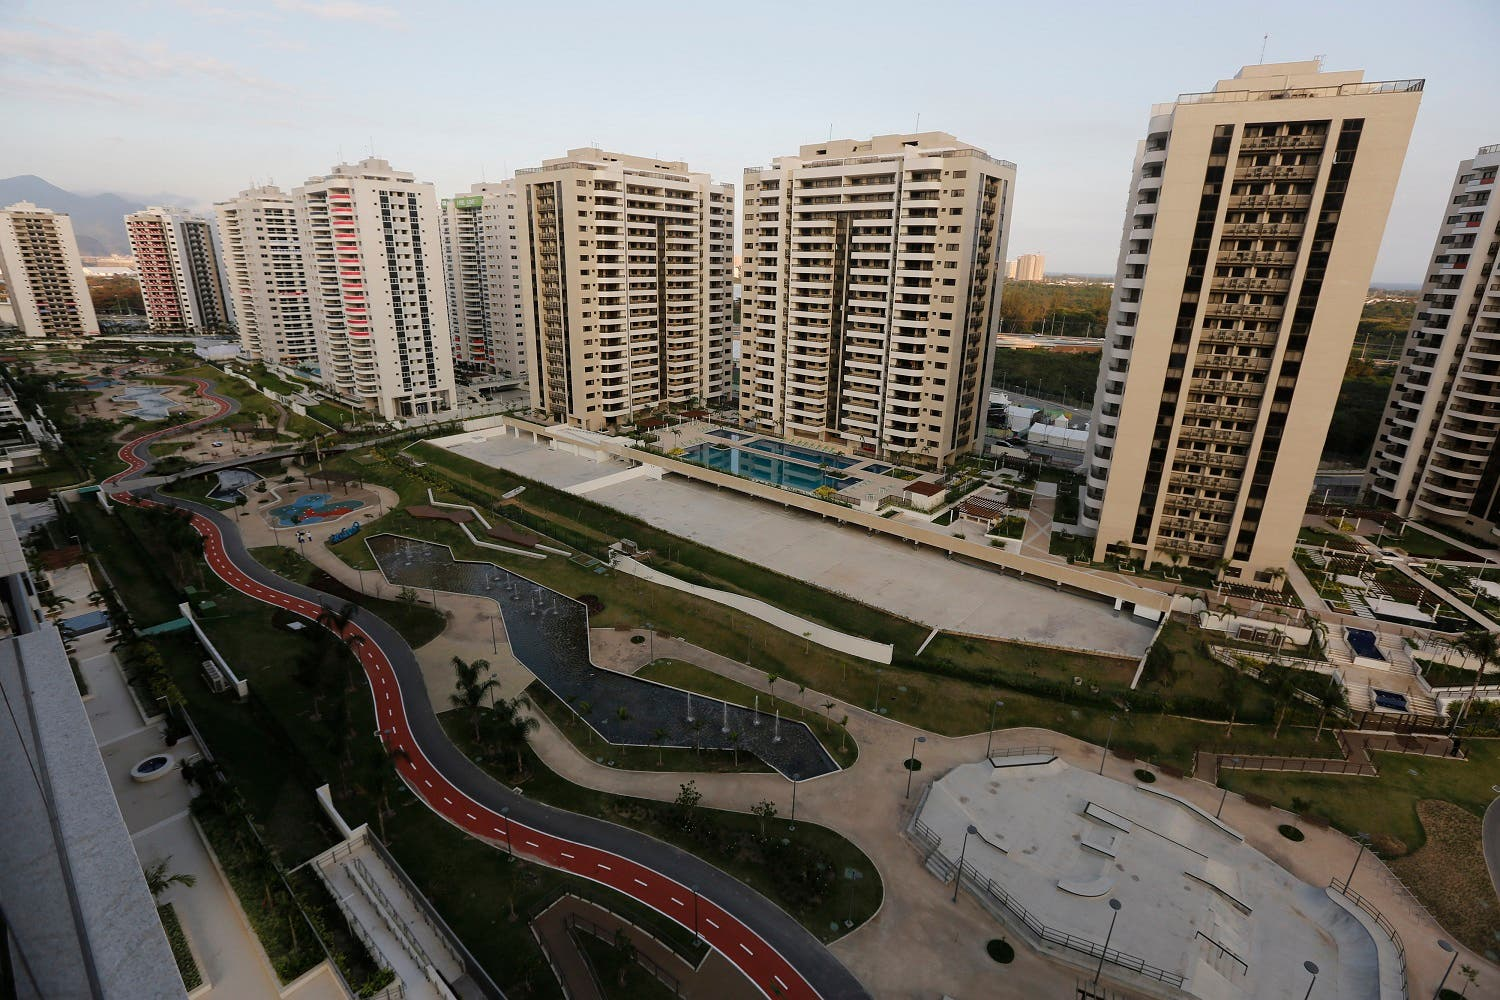 The Olympic Village stands ready in Rio de Janeiro, Brazil, Saturday, July 23, 2016. The brand new complex of residential towers are where nearly 11,000 athletes and some 6,000 coaches and other handlers will sleep, eat and train during the upcoming games, that will kickoff on Aug. 5 (AP)